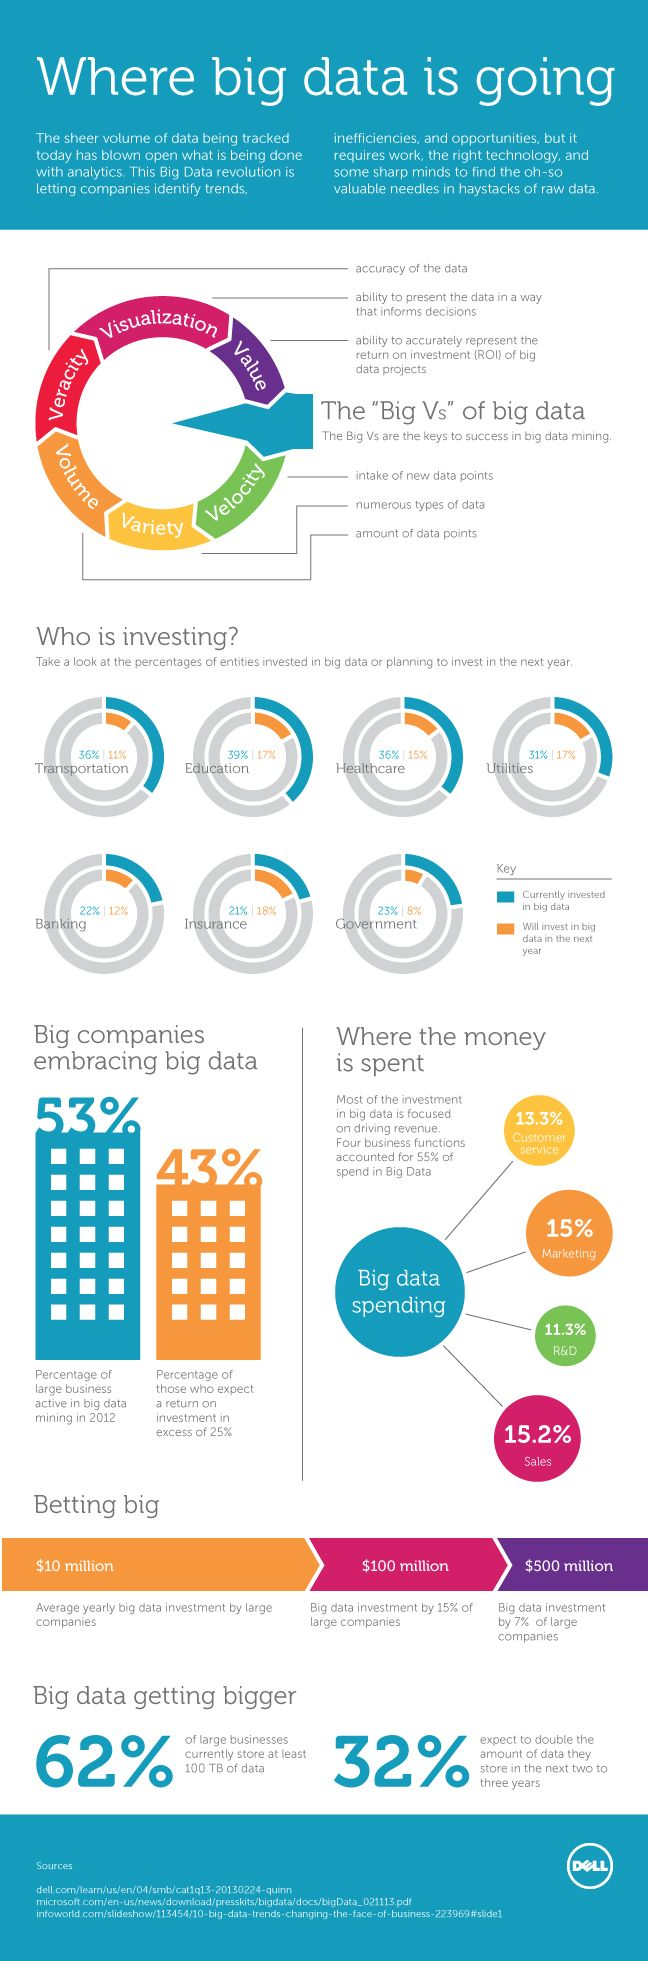 The Big Data revolution is here. But what does it take to find the oh-so-valuable needles in the haystack of raw data? Learn more: http://en.community.dell.com/dell-blogs/direct2dell/b/direct2dell/archive/2013/10/16/where-big-data-is-going.aspx